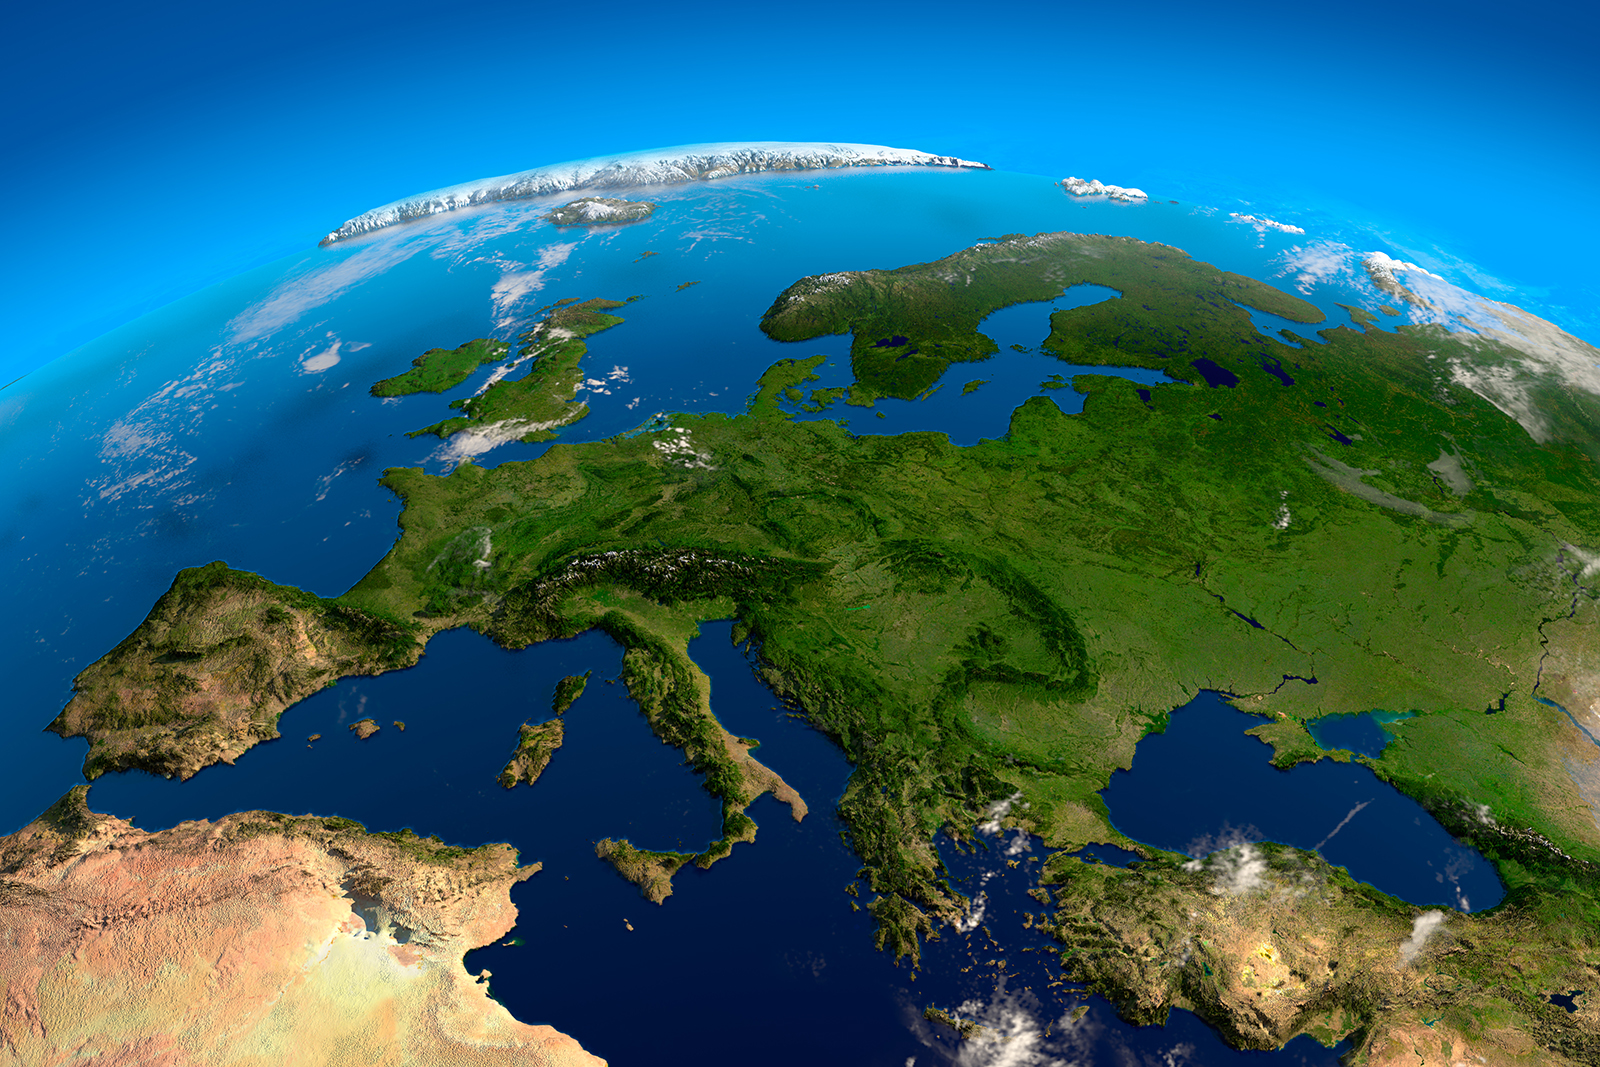 Europe, the view from the satellites. Photo: Shutterstock